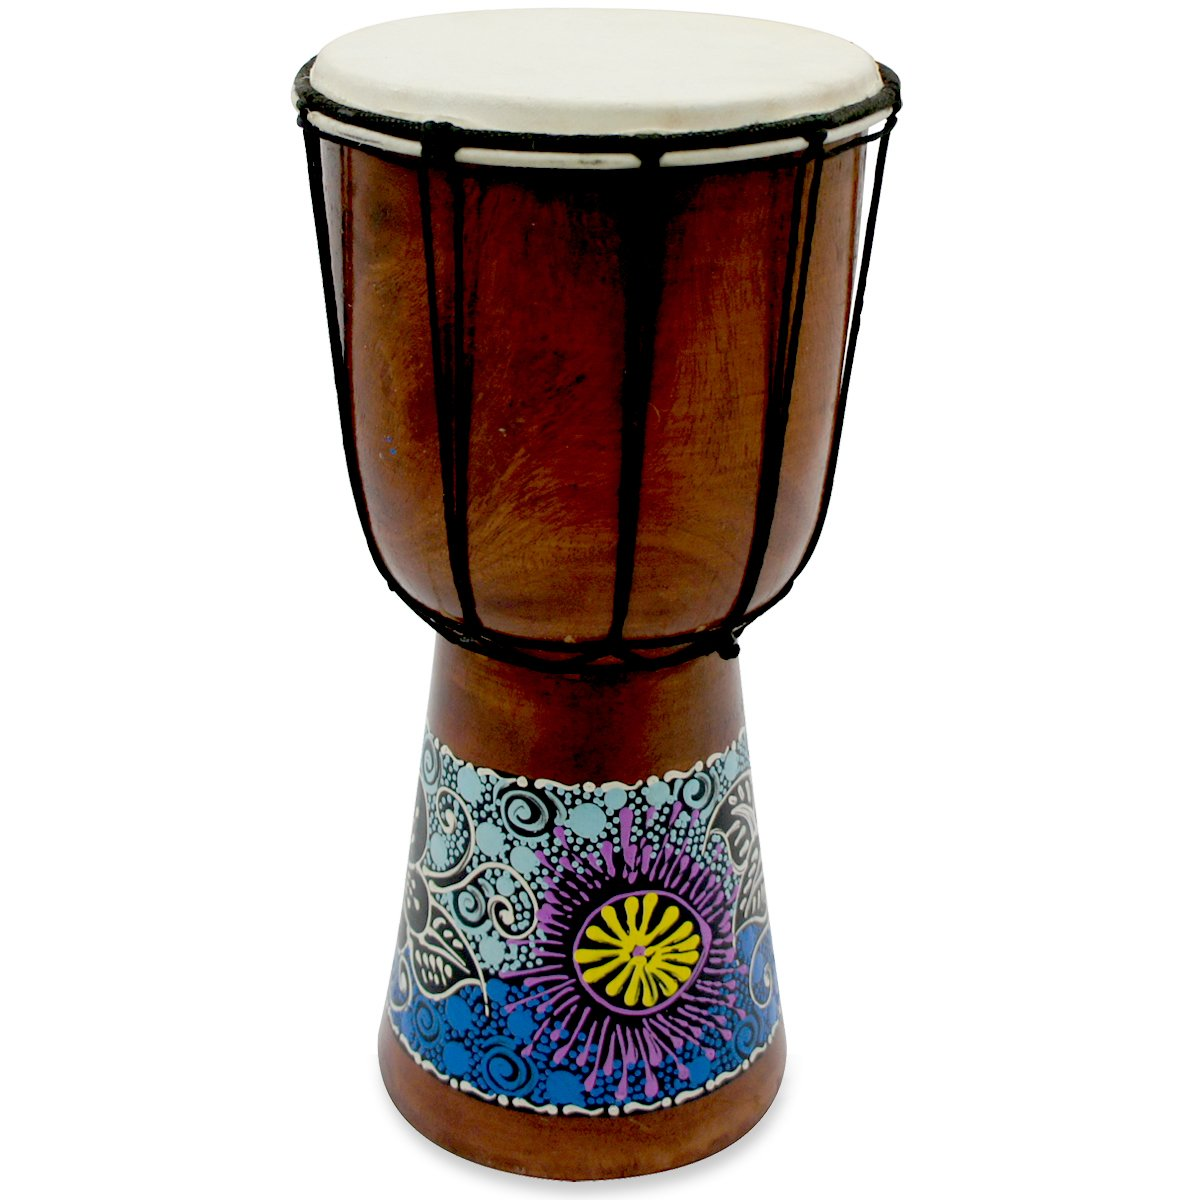 8'' Wooden Djembe Doumbek Darbuka Hand Drum Egyptian Design - Pattern May Vary by WOOGEES